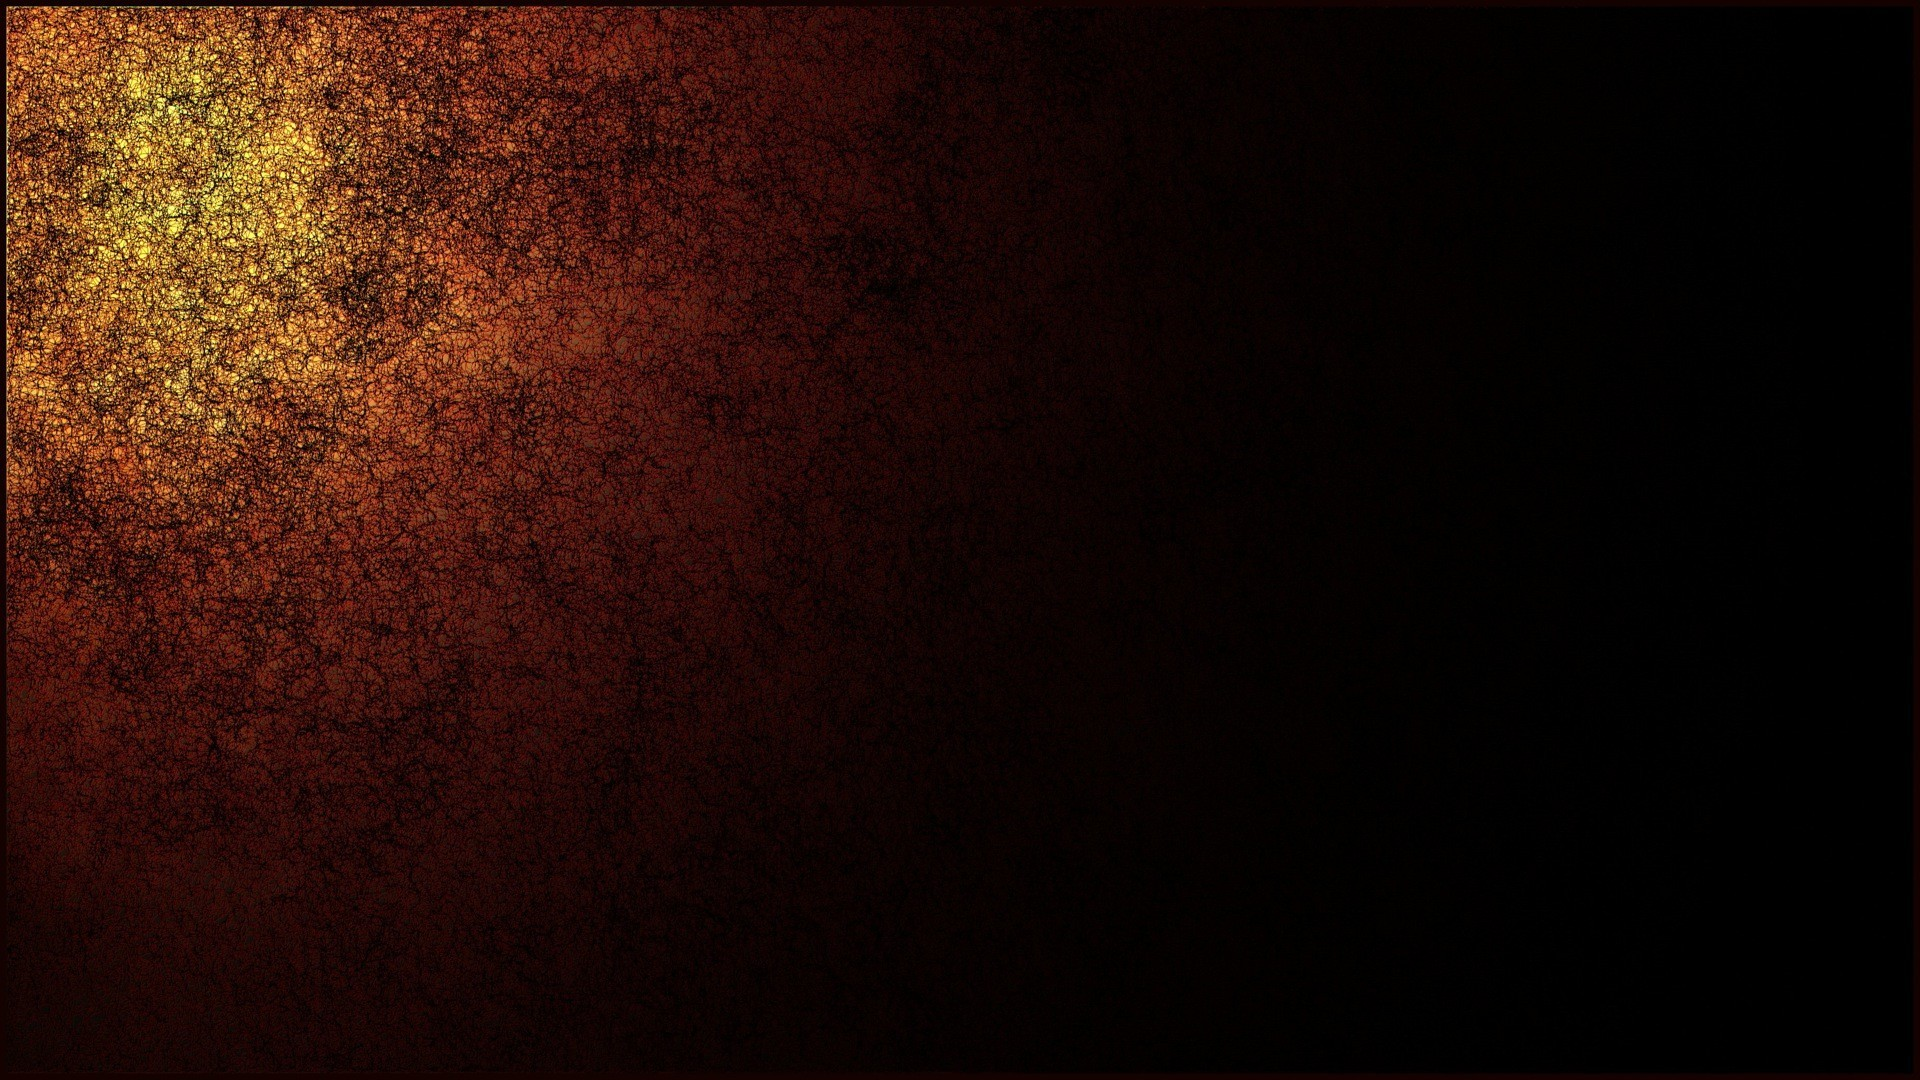 Best Rusty Wallpapers in High Quality Rusty Backgrounds 1920x1080